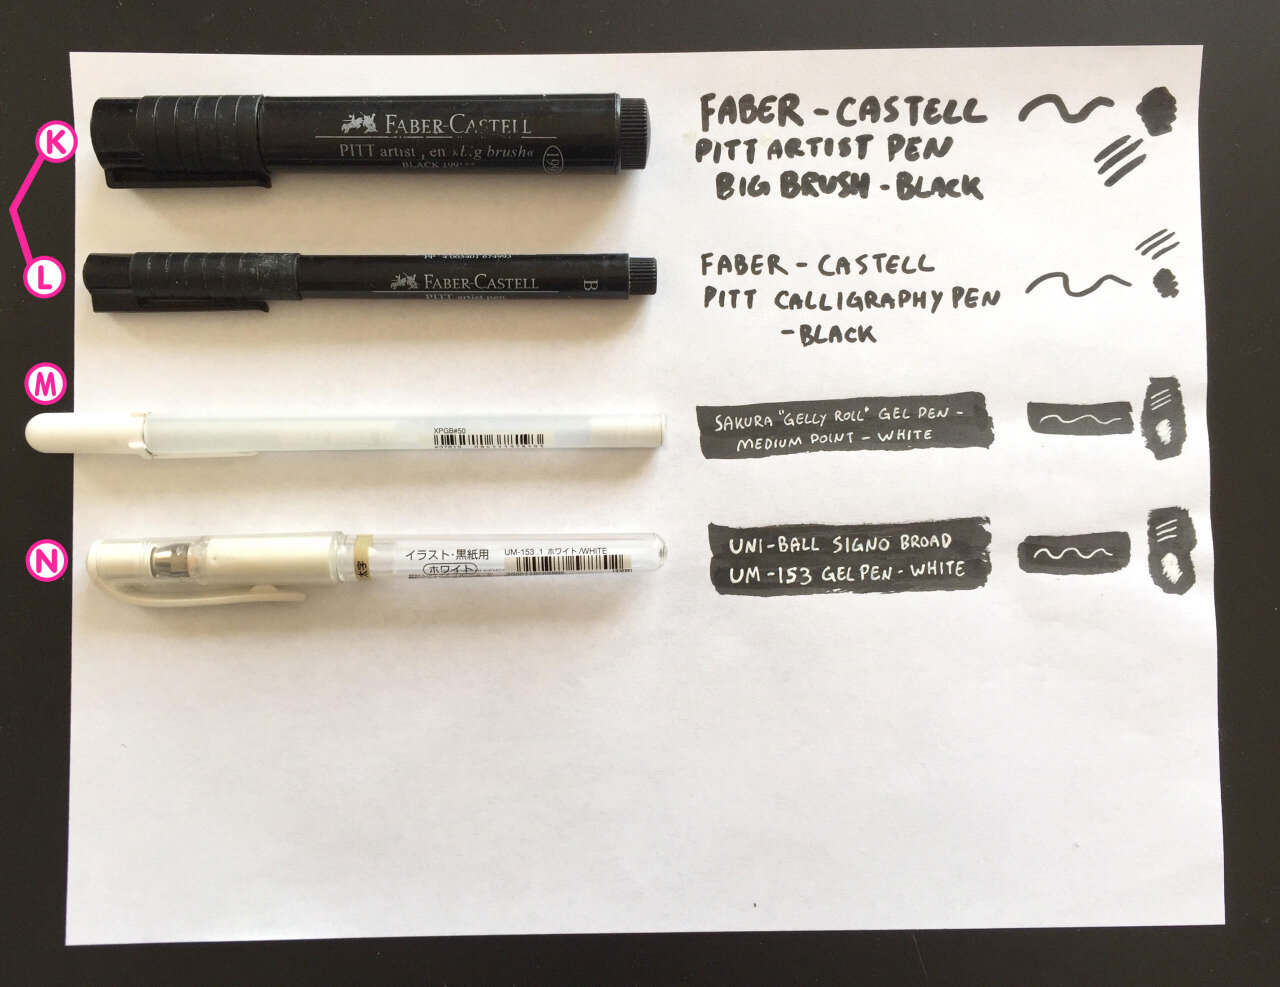 More Inking Pens! - K Faber-Castell Pitt Artist Pen: Big BrushThey're a lot more useful, even though the tips will wear down fast. Great for filling in large areas of ink, or if you need a really large solid line for something. I always have trouble finding these in stores and I've never been sure why. I guess they're very popular and sell out often?((Available here))